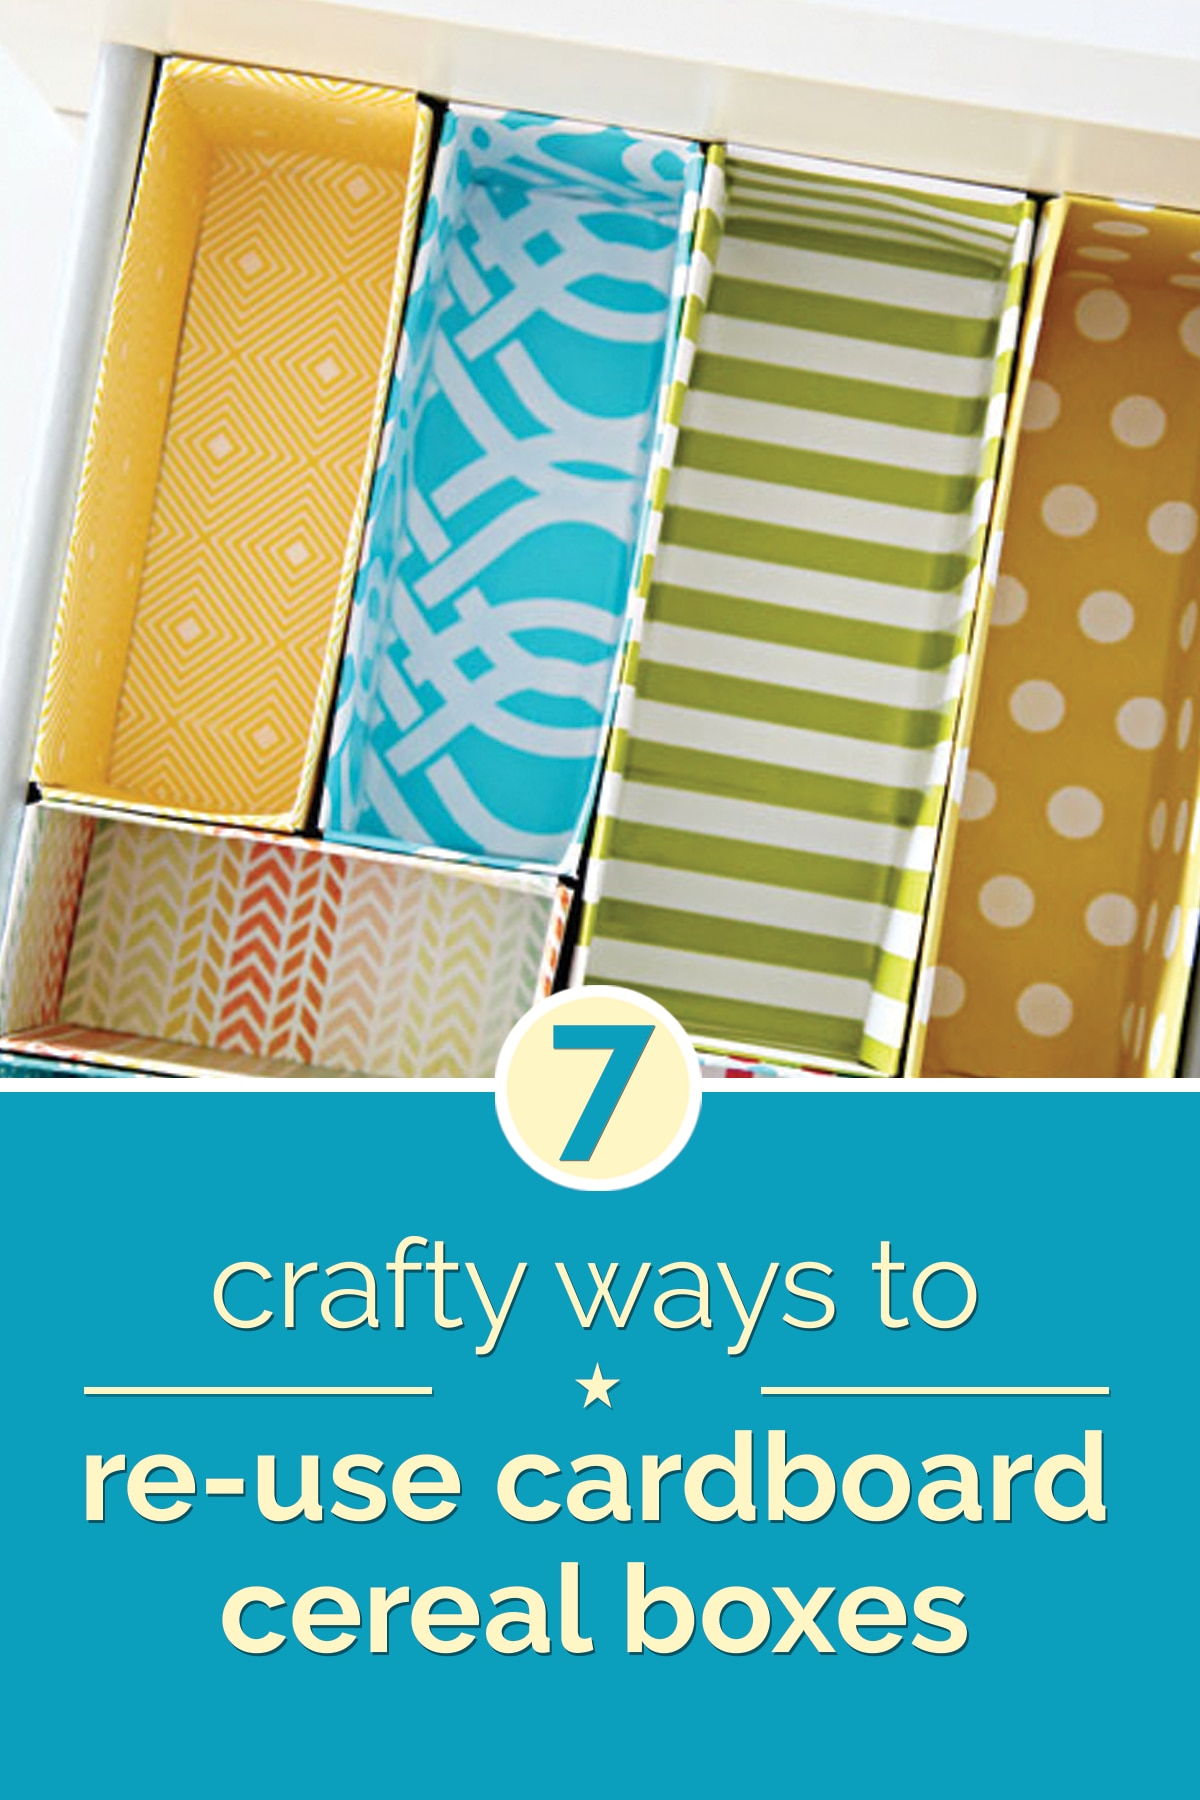 7 crafty ways to reuse cardboard cereal boxes thegoodstuff